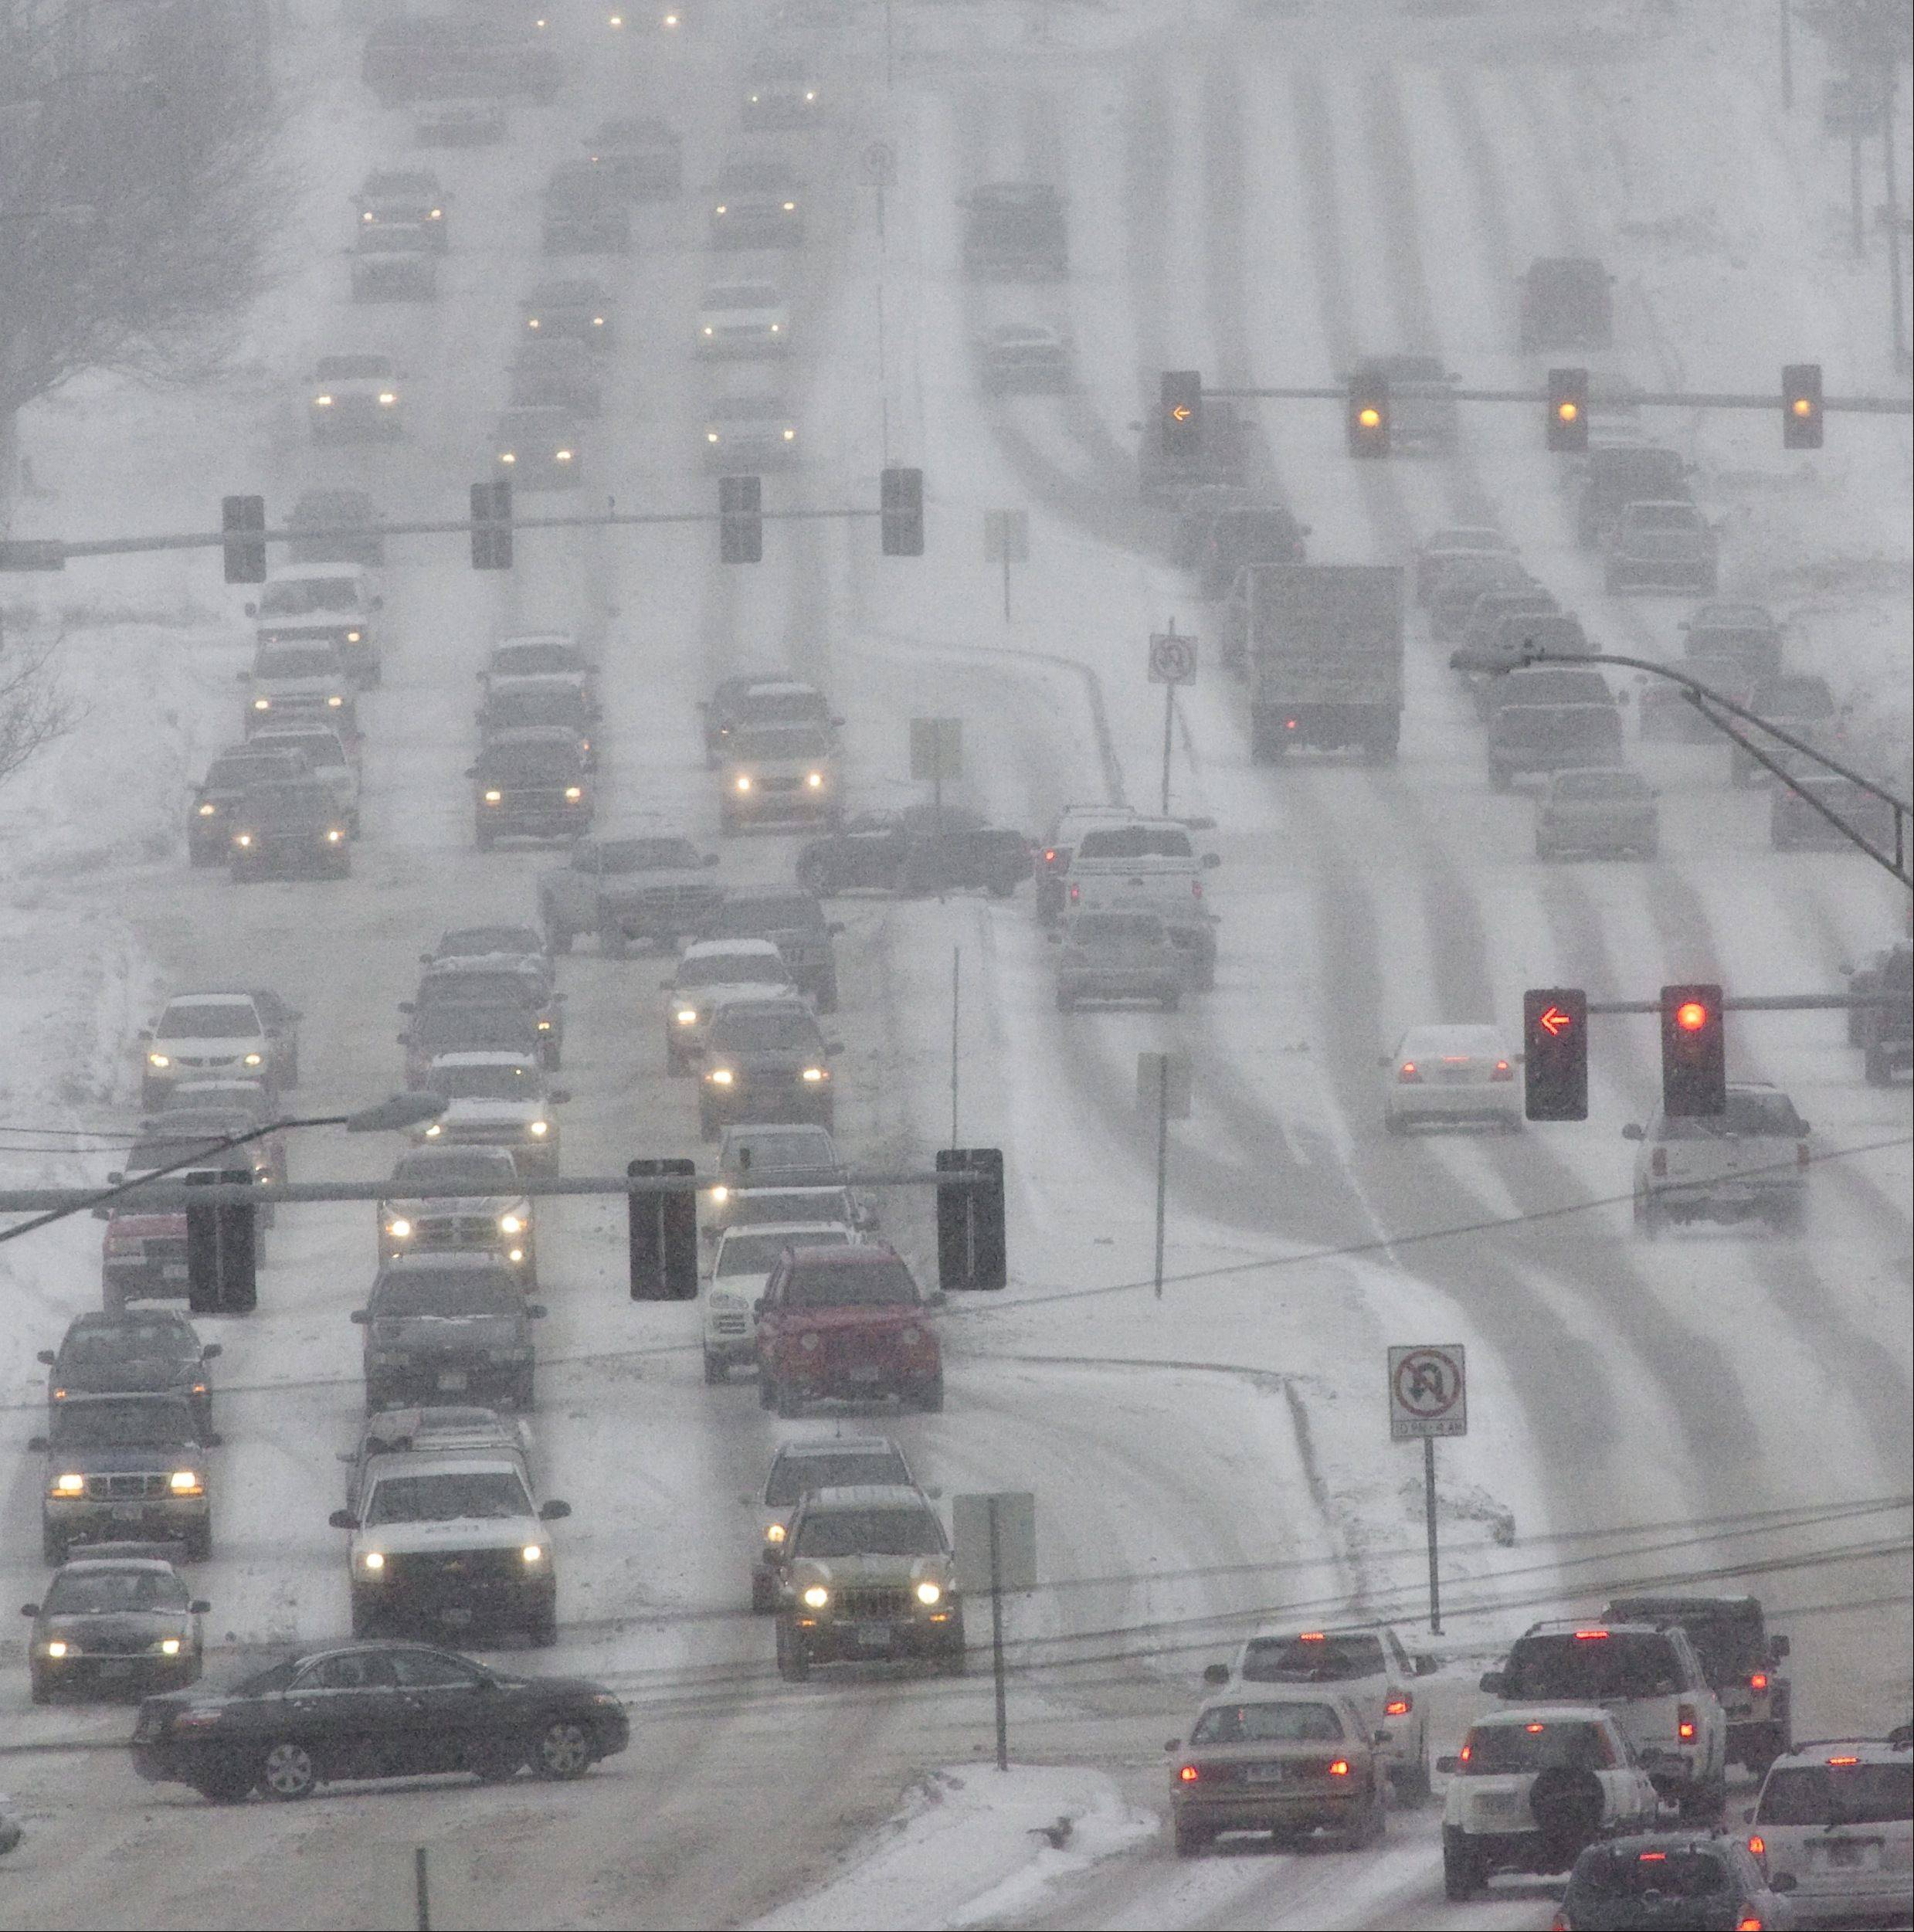 The National Weather Service is predicting more than 6 inches of snow for some parts of the Chicago suburbs during the first half of the week.